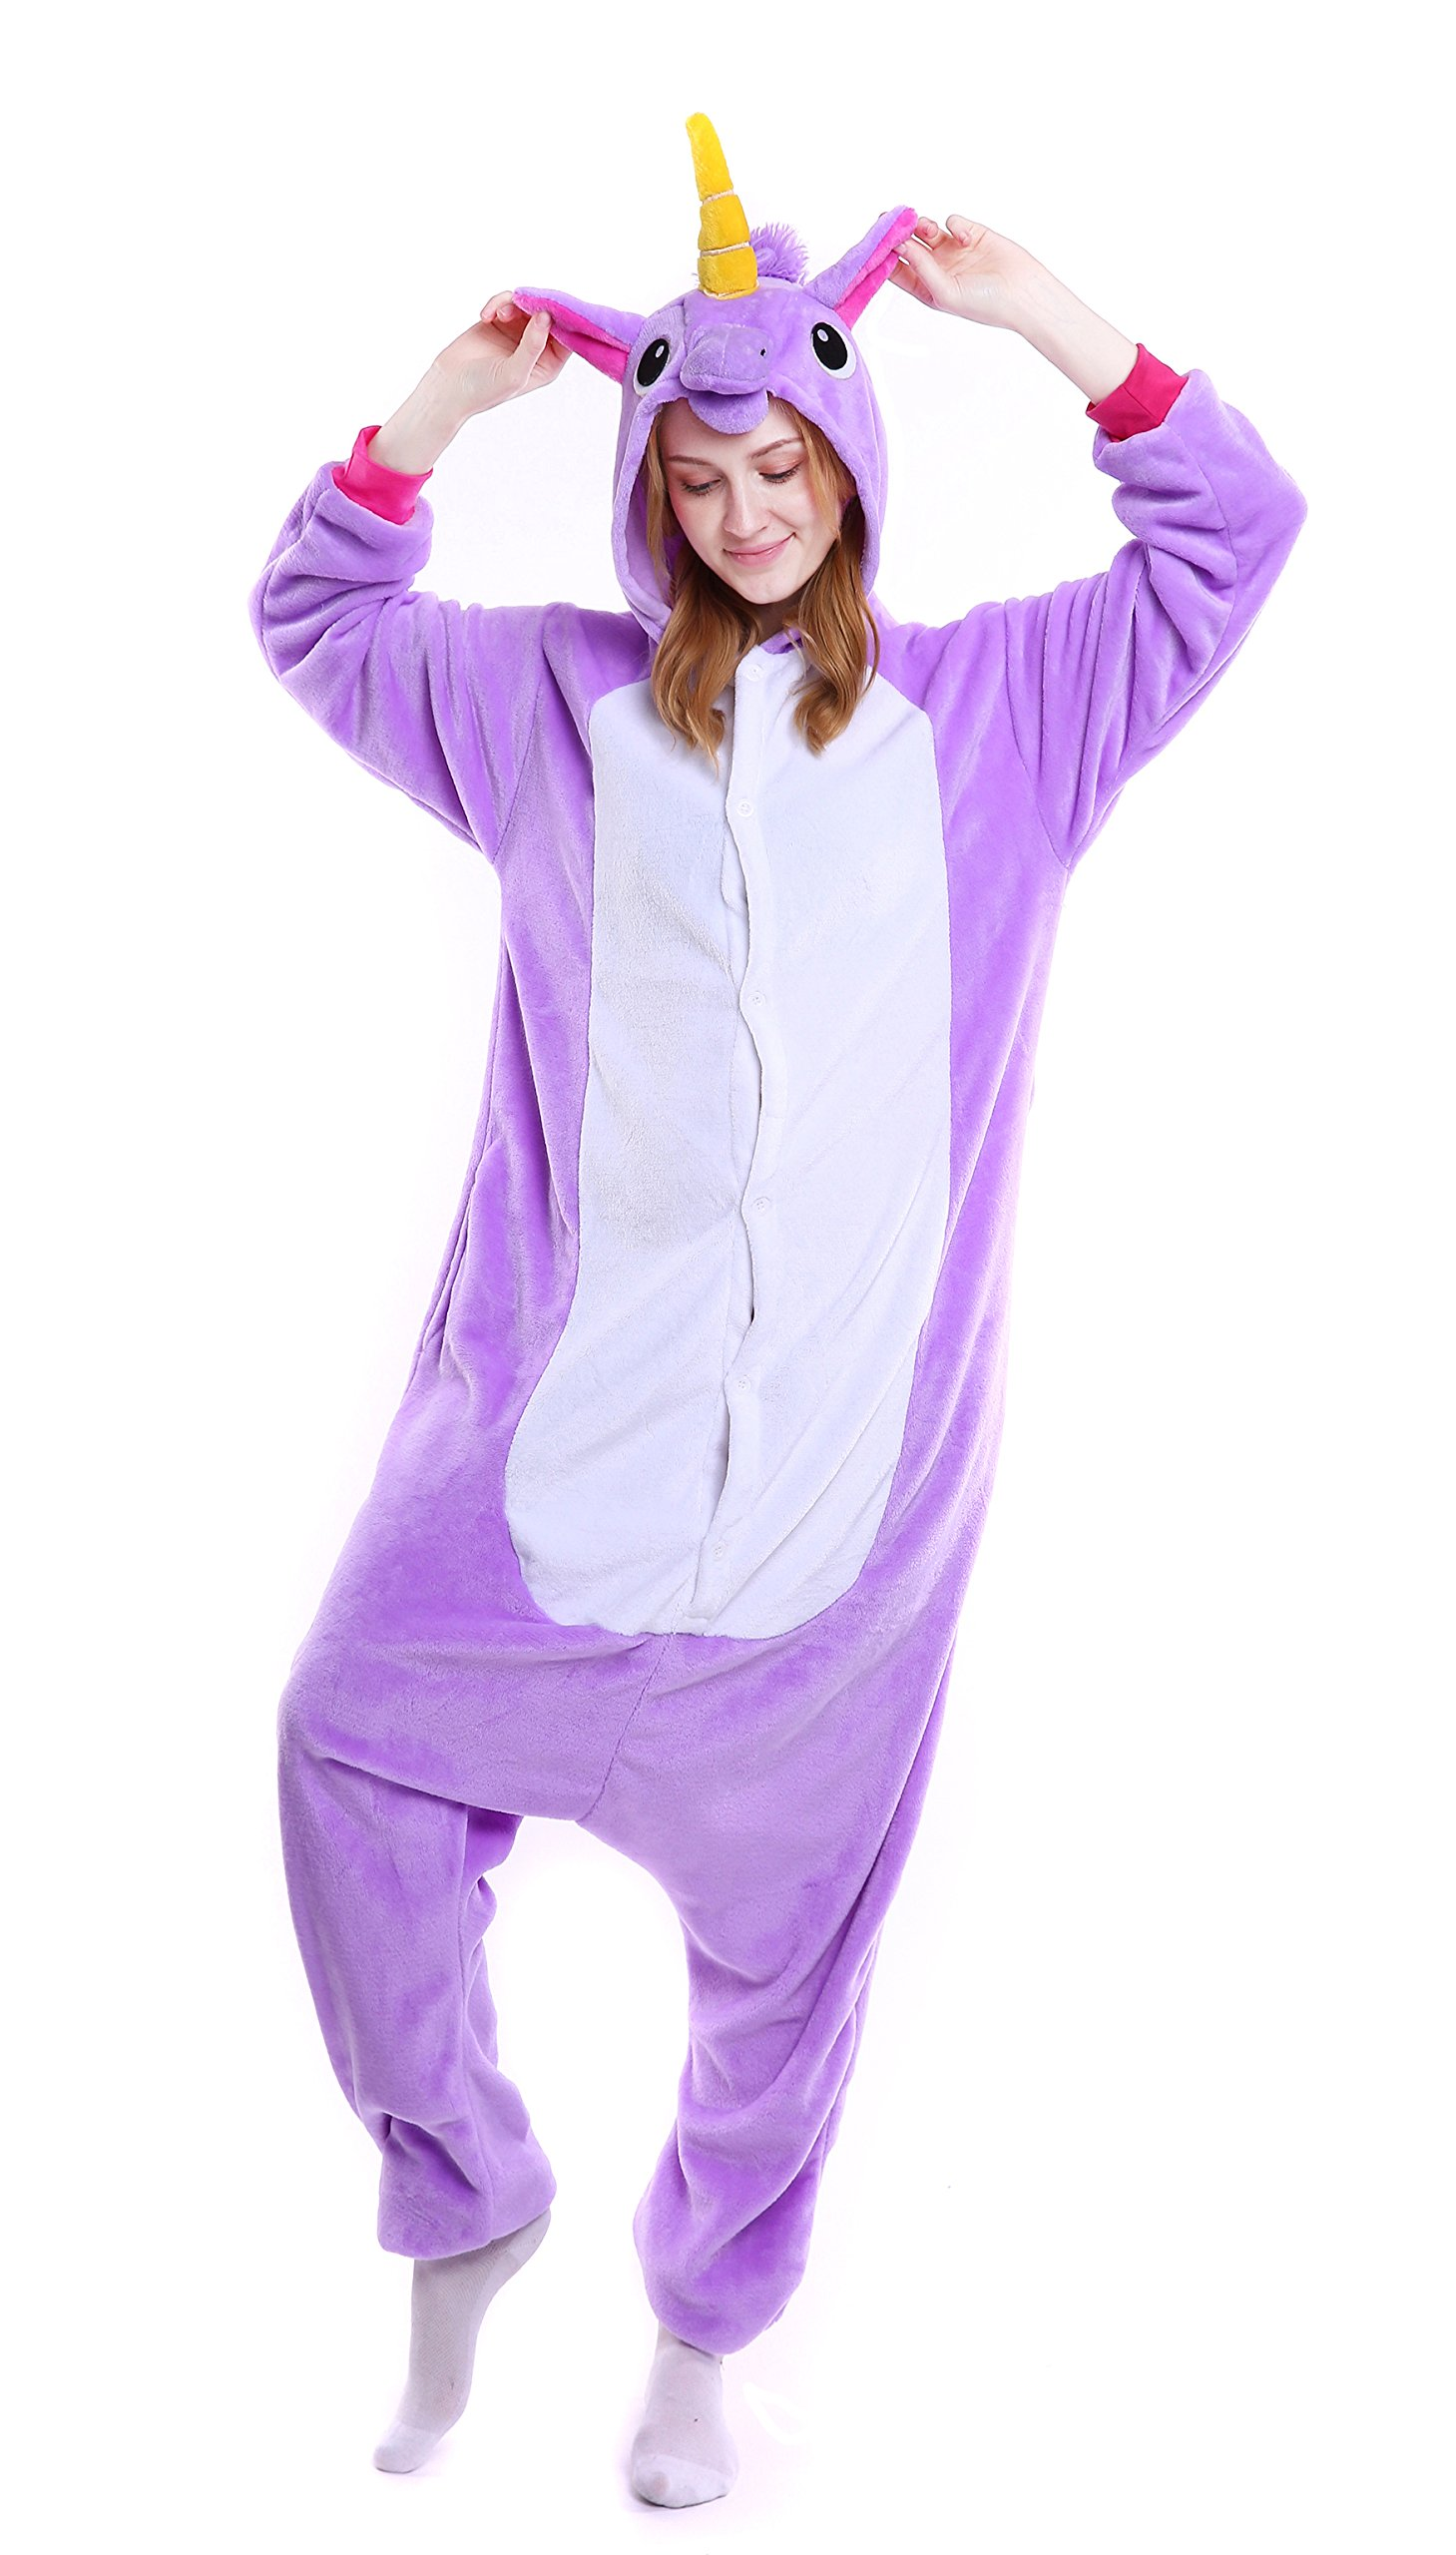 Dingwangyang Adult Unicorn Pajamas Animal Costume Cosplay Onesie Kigurumi Halloween Gift Purple Unicorn L